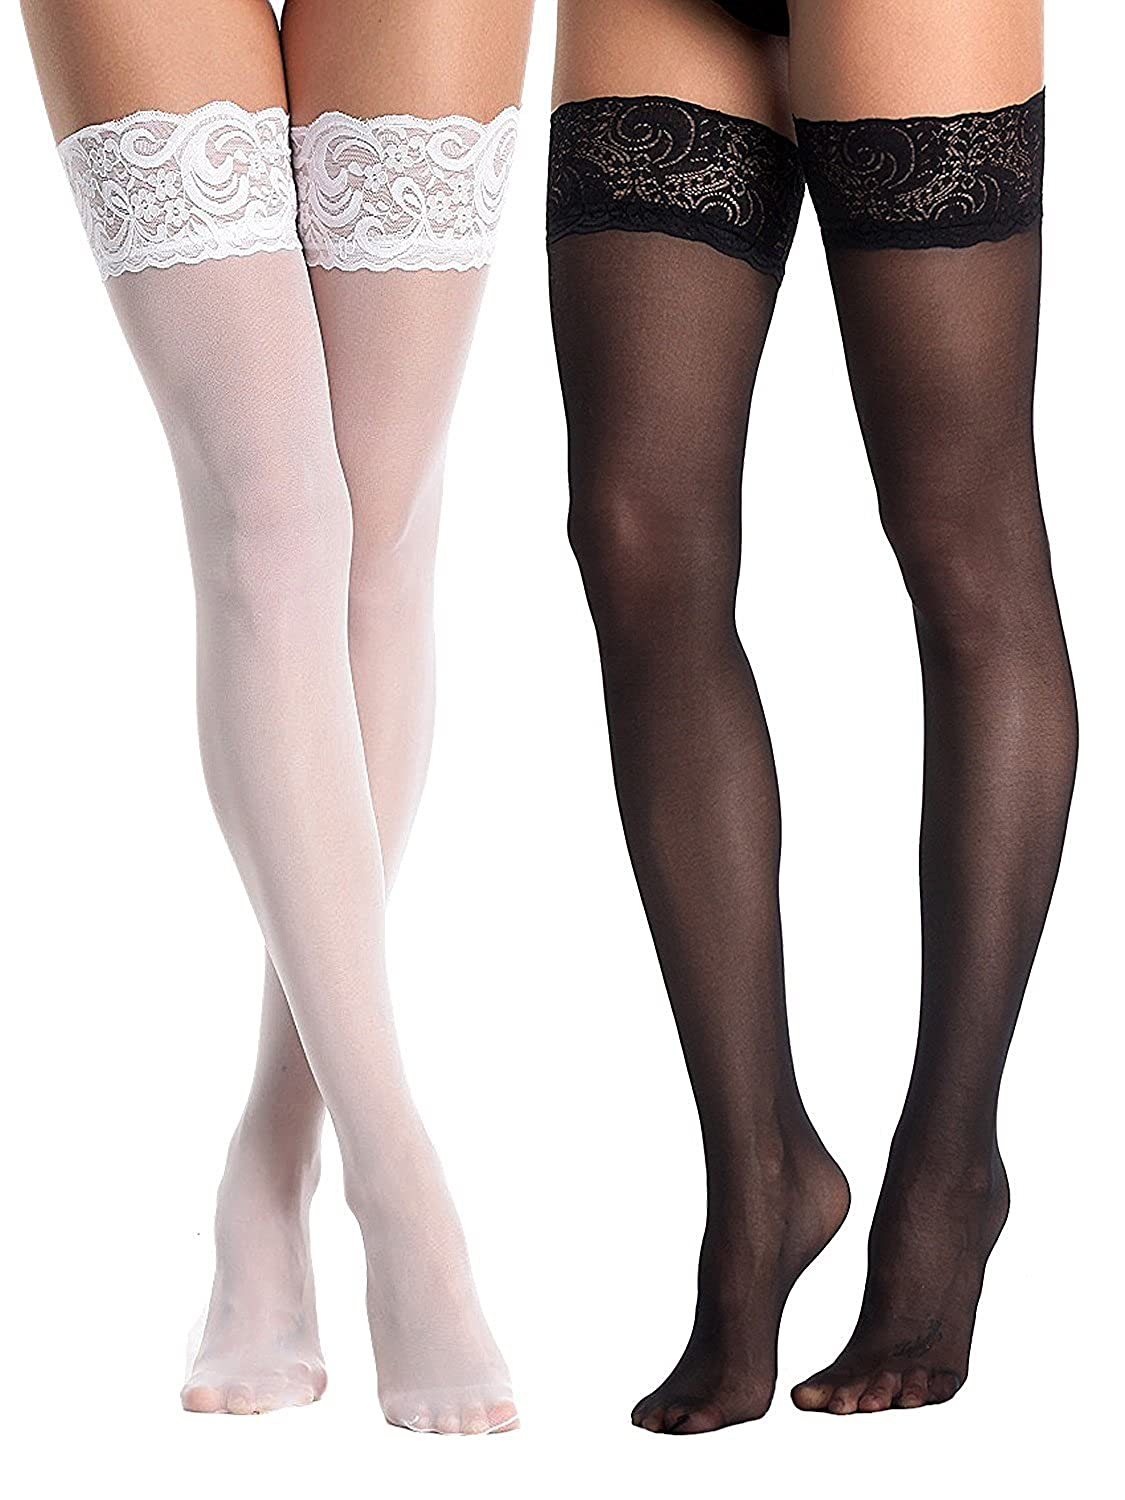 AMORETU Womens Patterned Tights Lace Top Thigh High Stockings 2 Pairs